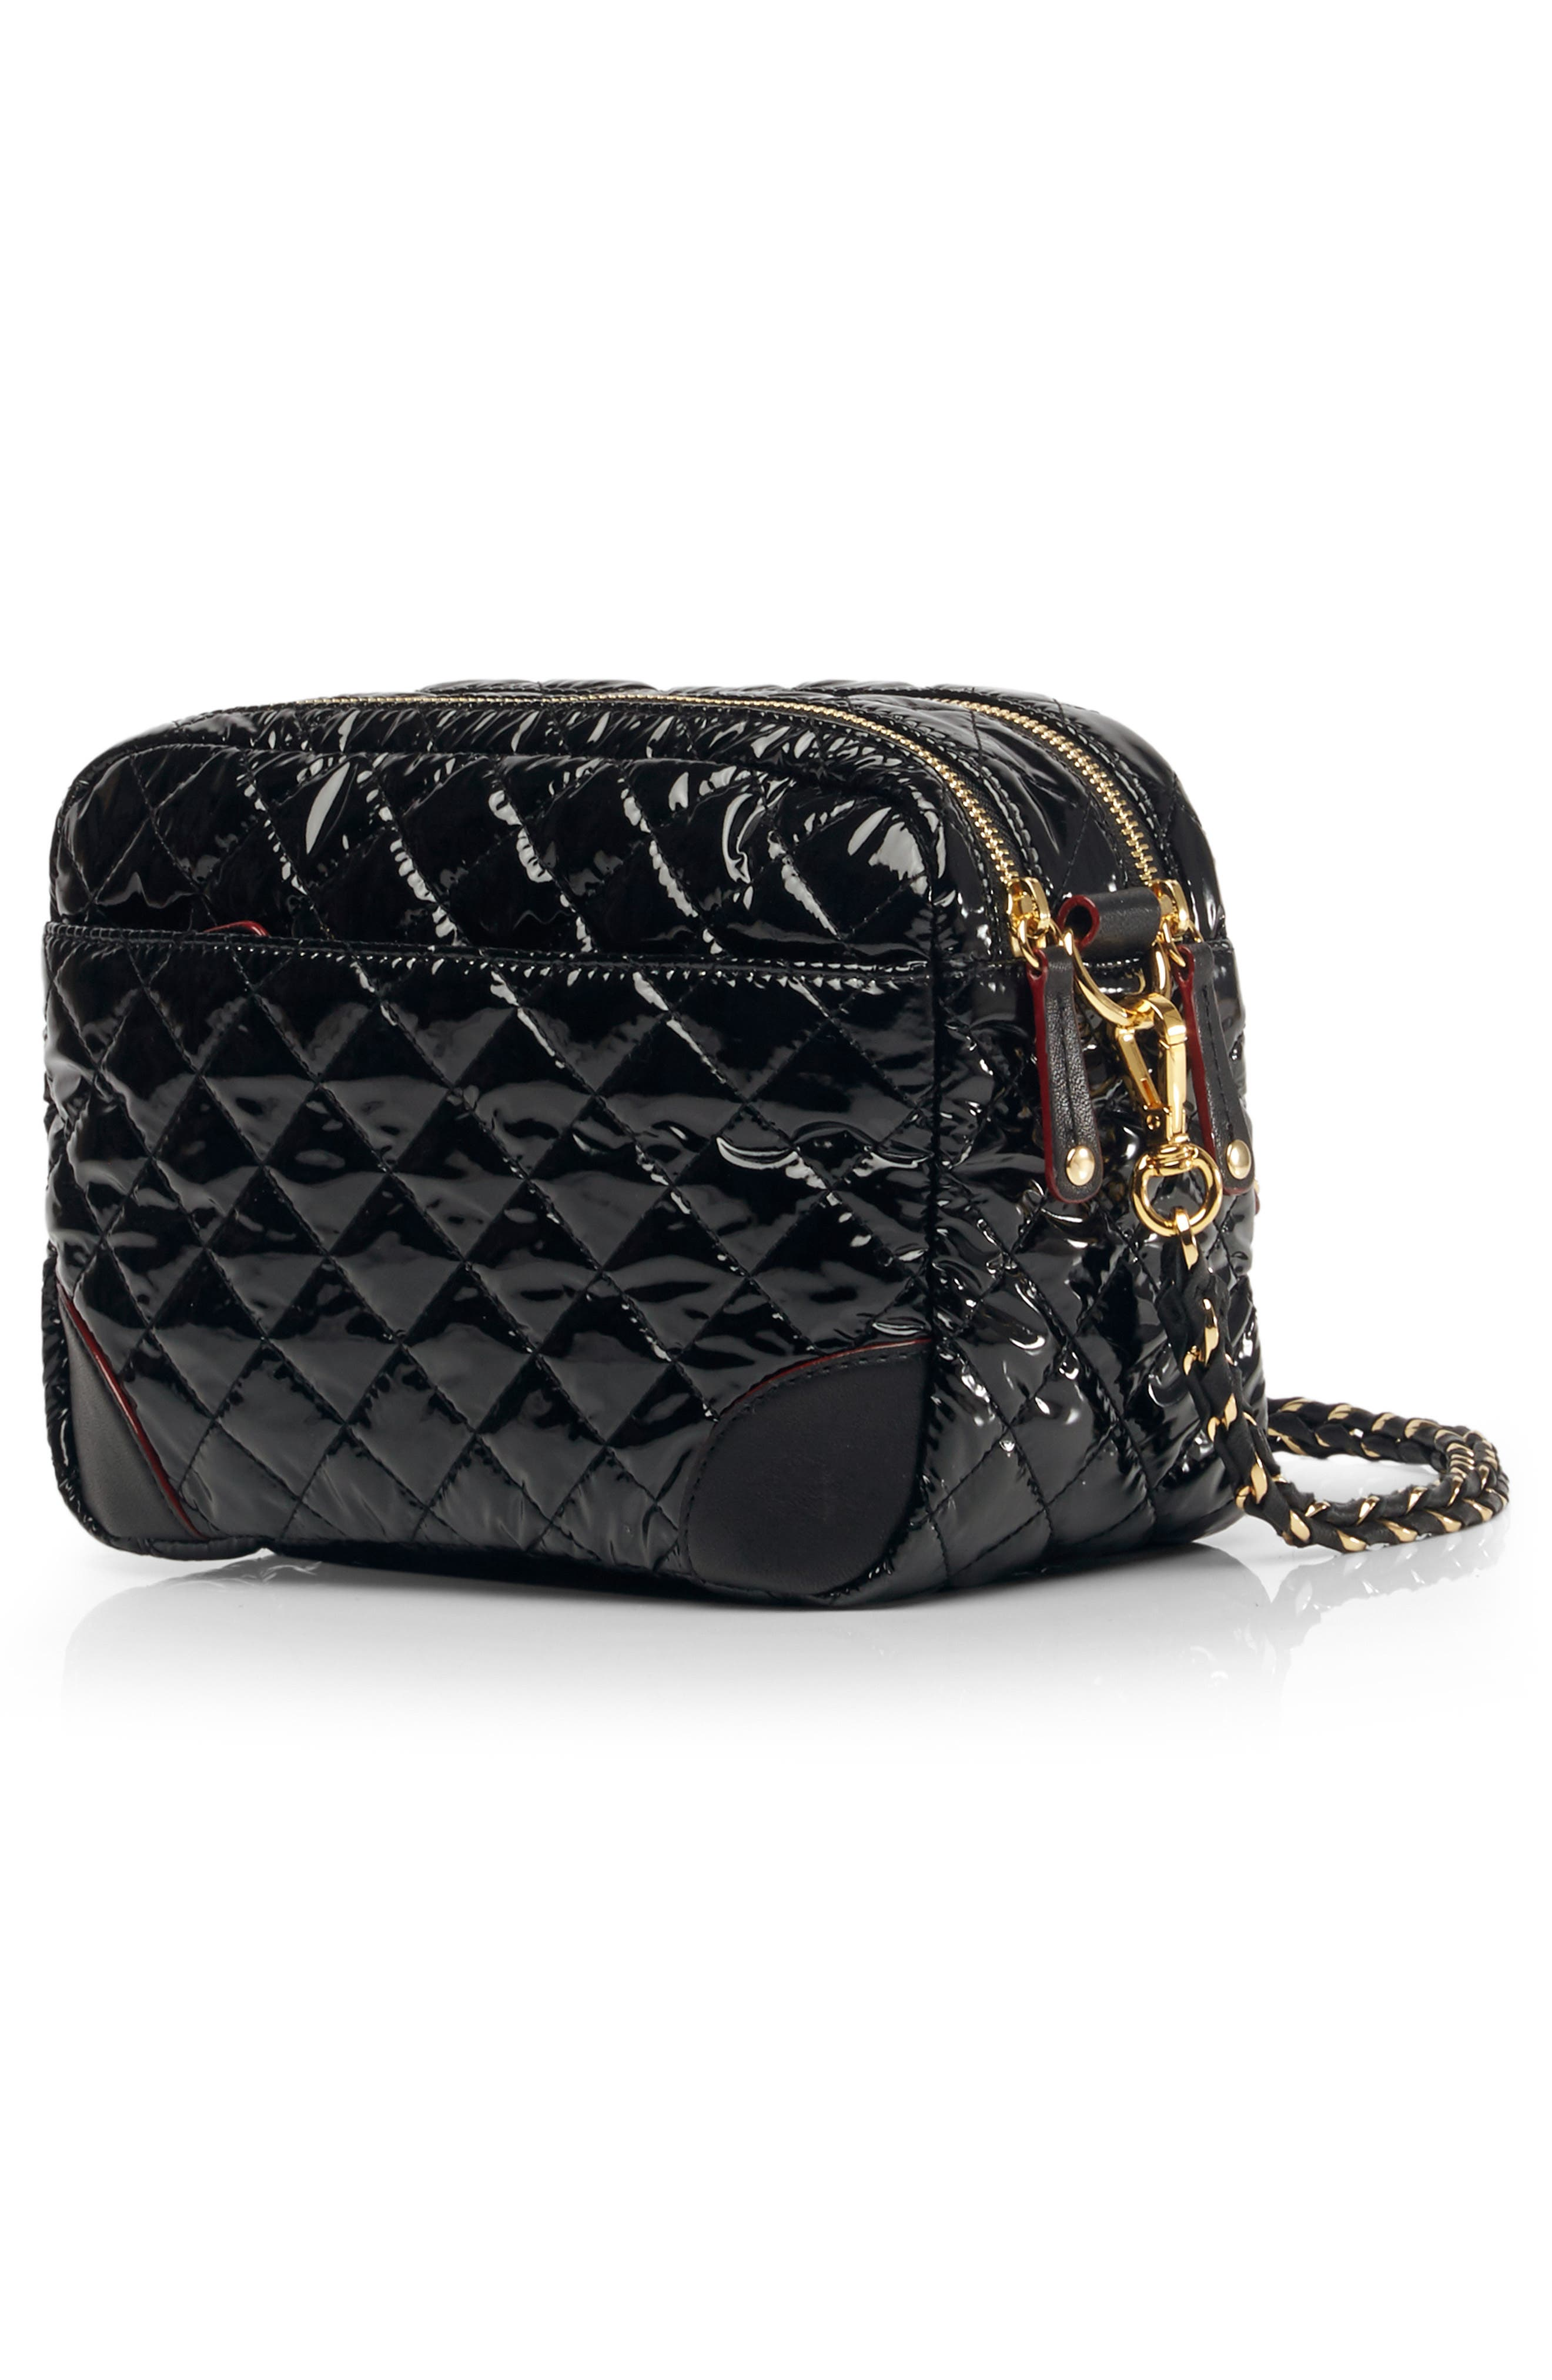 Small Crosby Bag,                             Alternate thumbnail 3, color,                             BLACK LACQUER